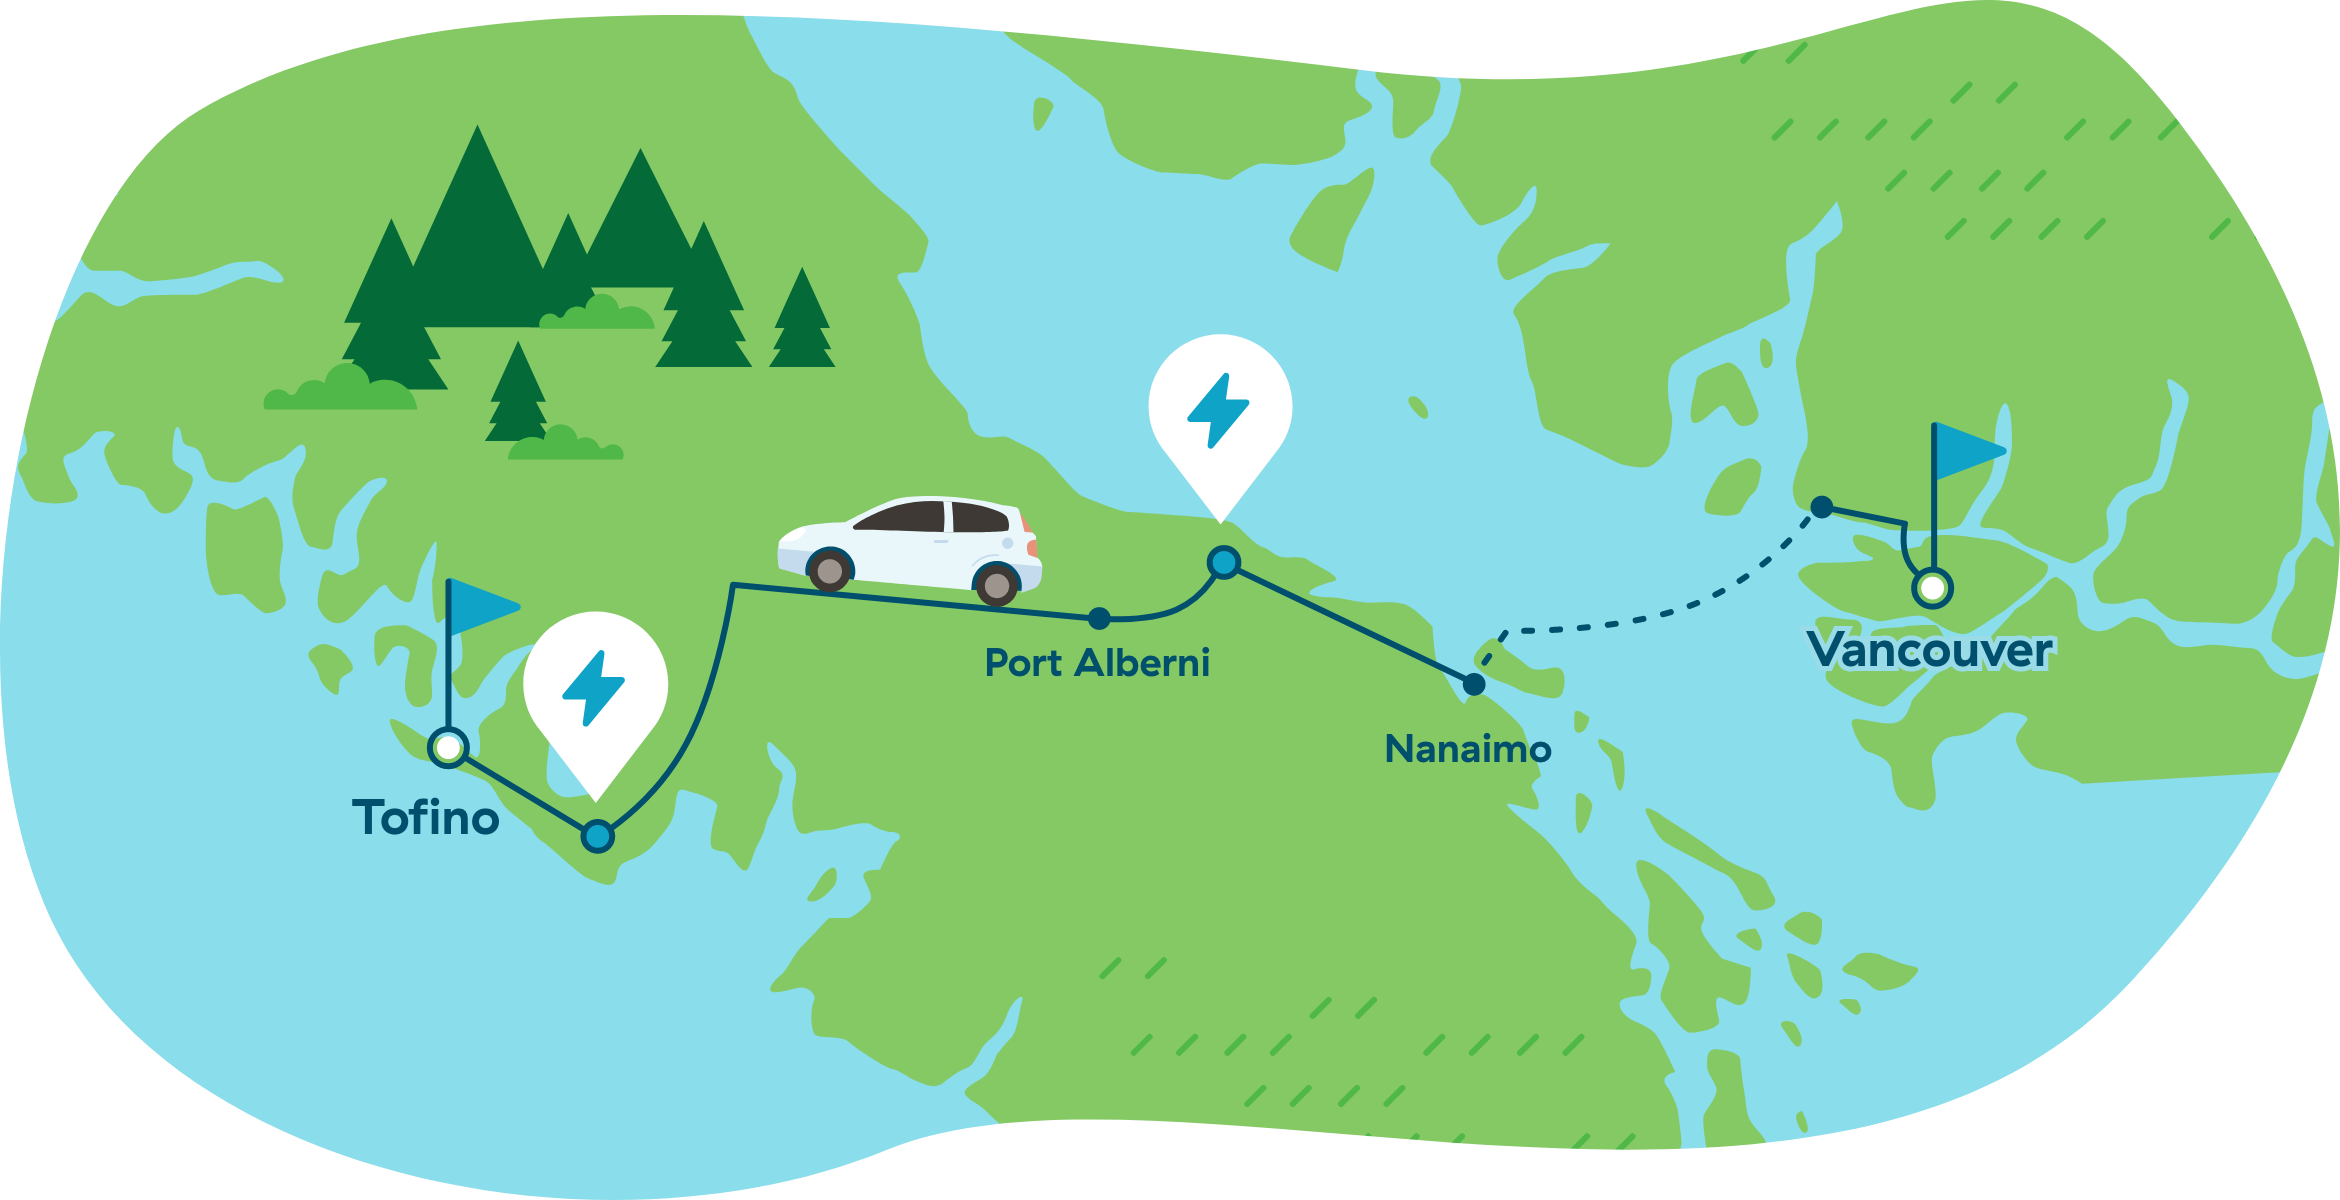 map of trip from Vancouver to Tofino